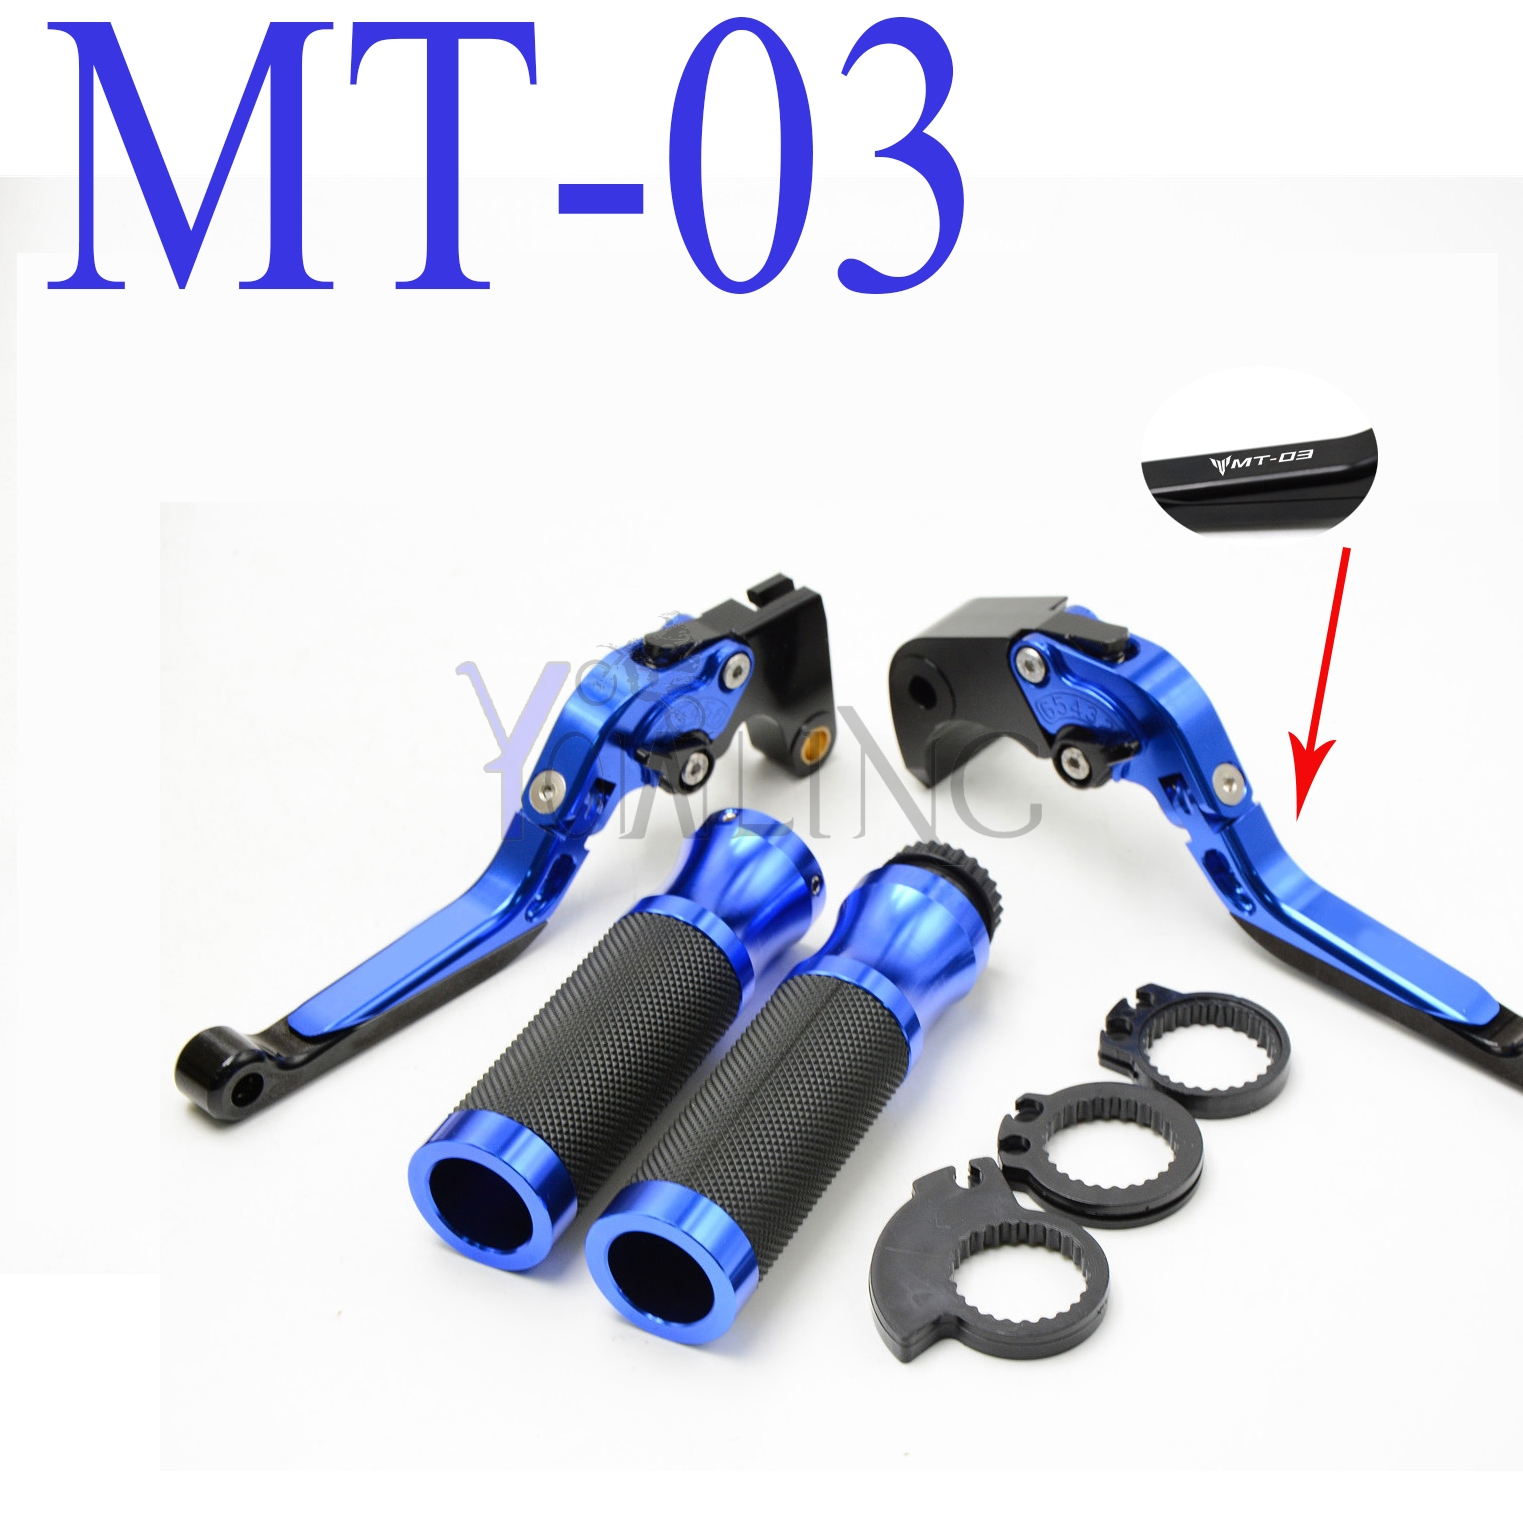 With MT-03 logo CNC Motorcycle Brake clutch lever handle grips For YAMAHA MT-03 MT03 ( 2015 2016 2017 ) 6 colors cnc adjustable motorcycle brake clutch levers for yamaha yzf r6 yzfr6 1999 2004 2005 2016 2017 logo yzf r6 lever